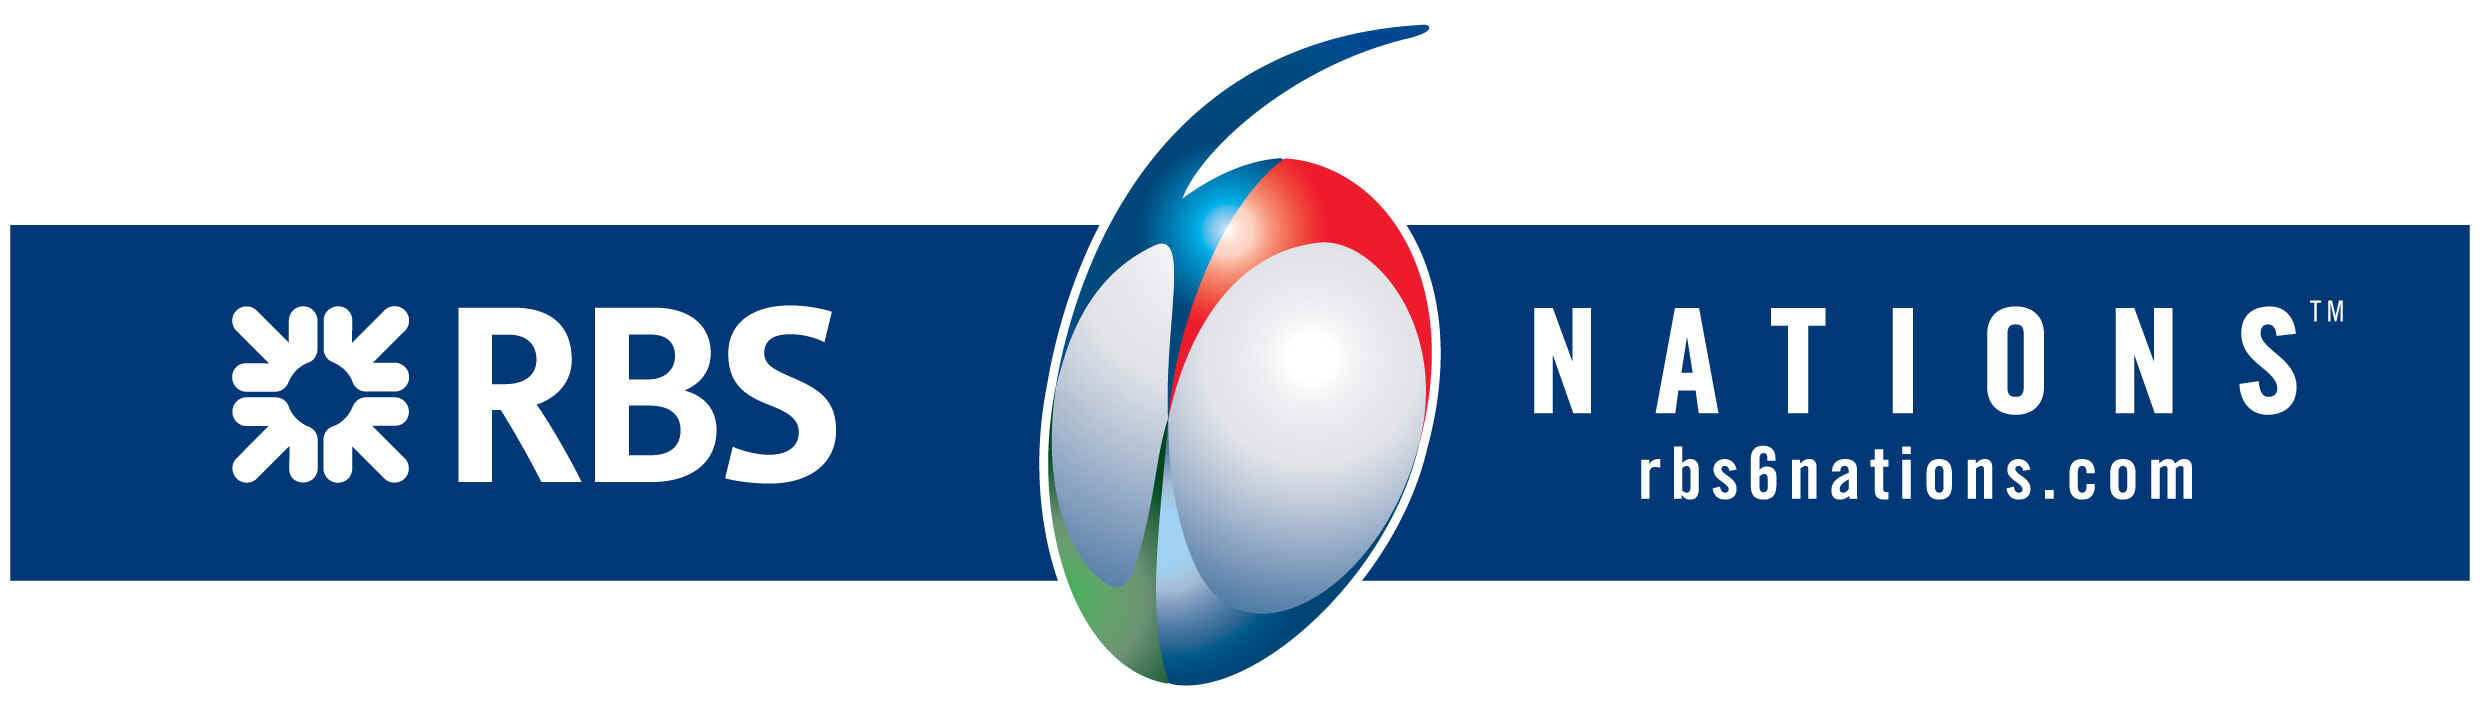 6_nations_logo